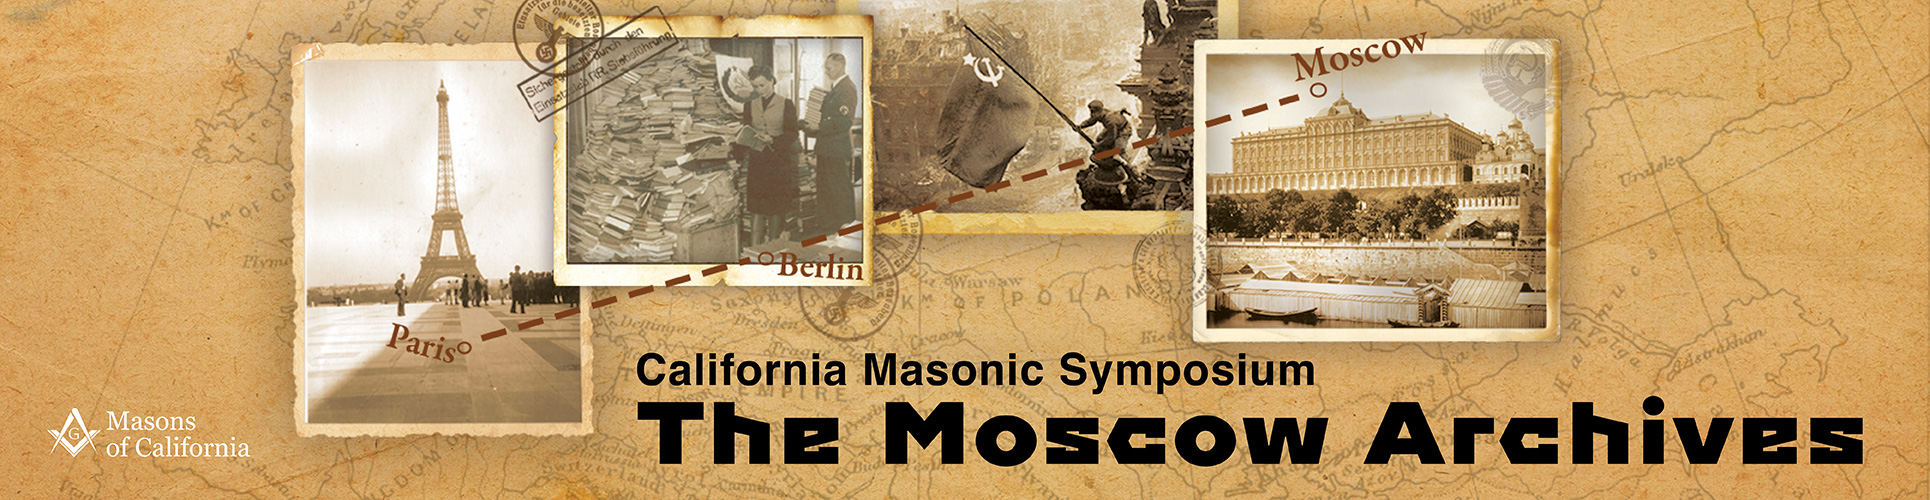 17th Annual California Masonic Symposium